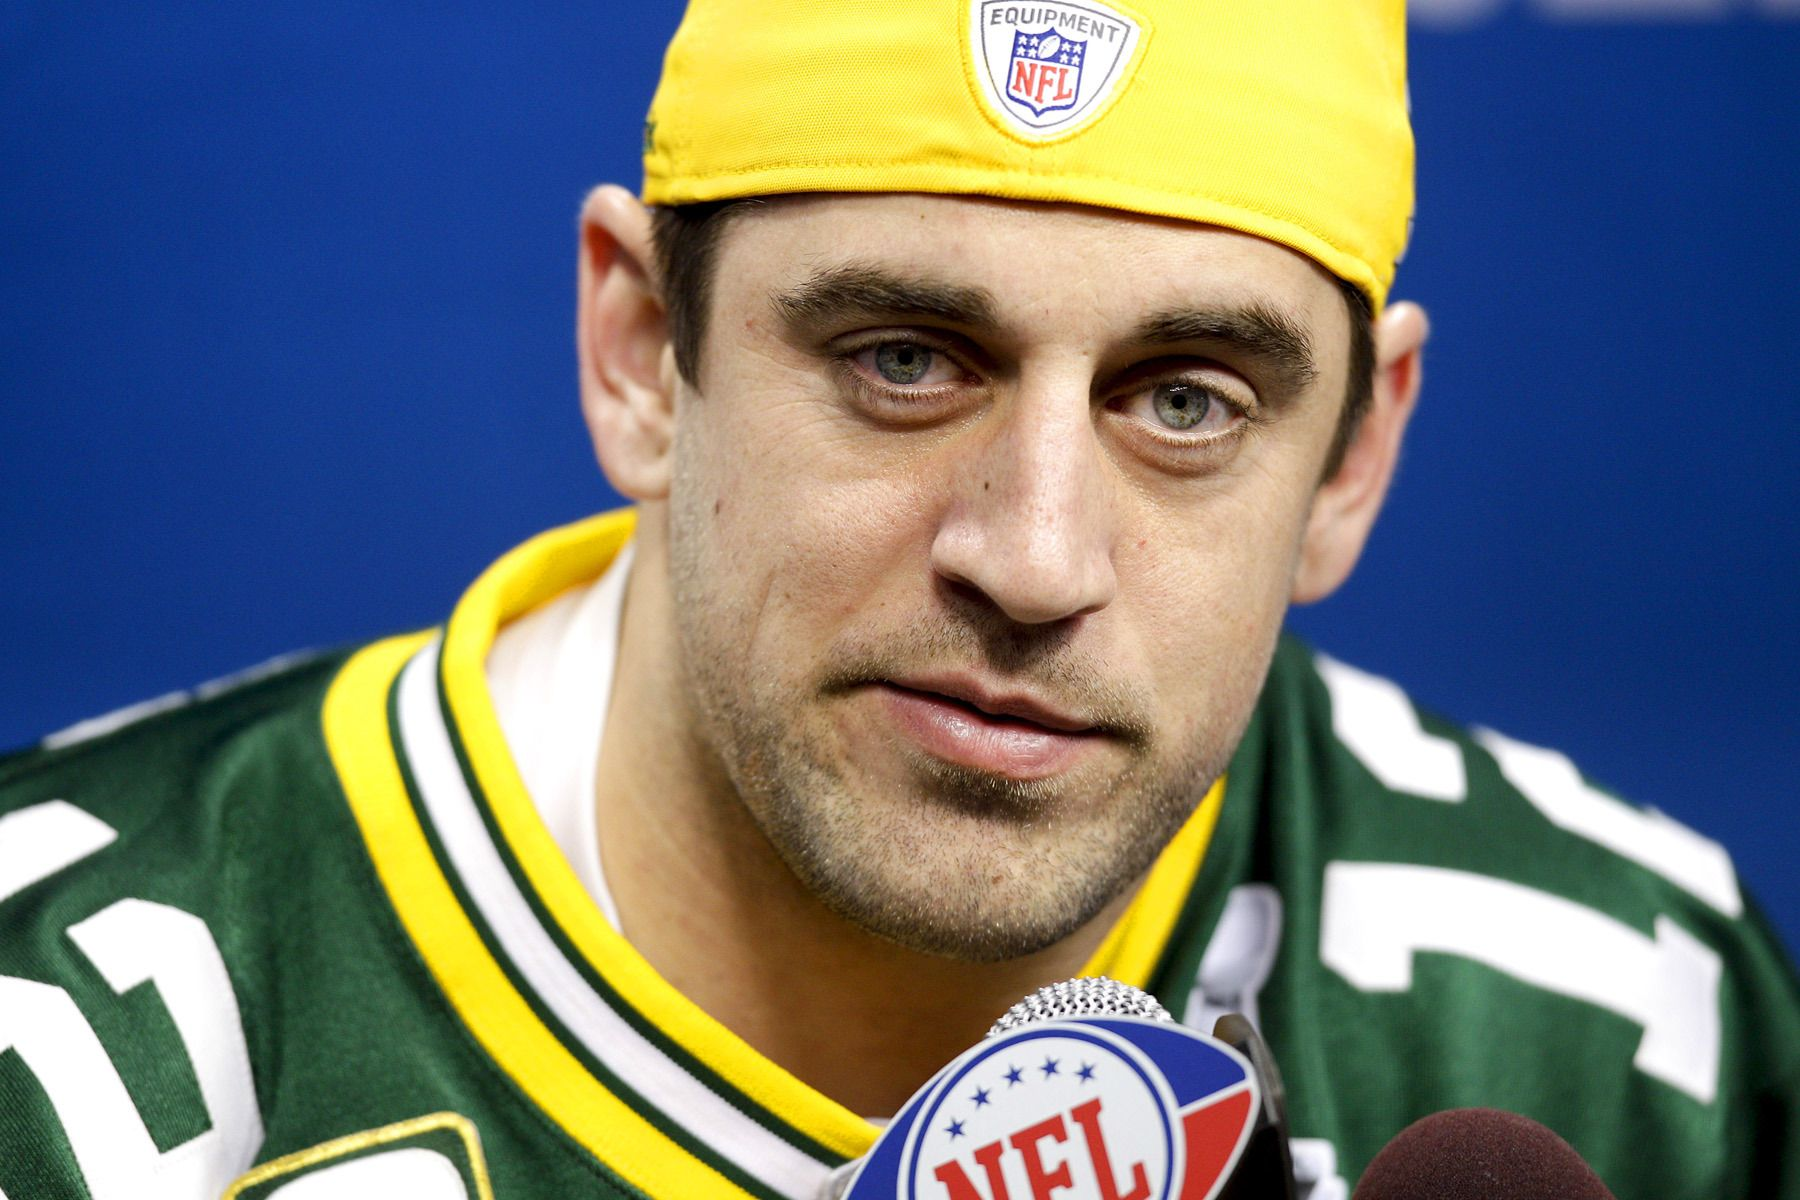 Wednesday Morning Quarterbacking Qb Attractiveness Rating Tier 3 Aaron Rodgers Packers Football Billie Jean King